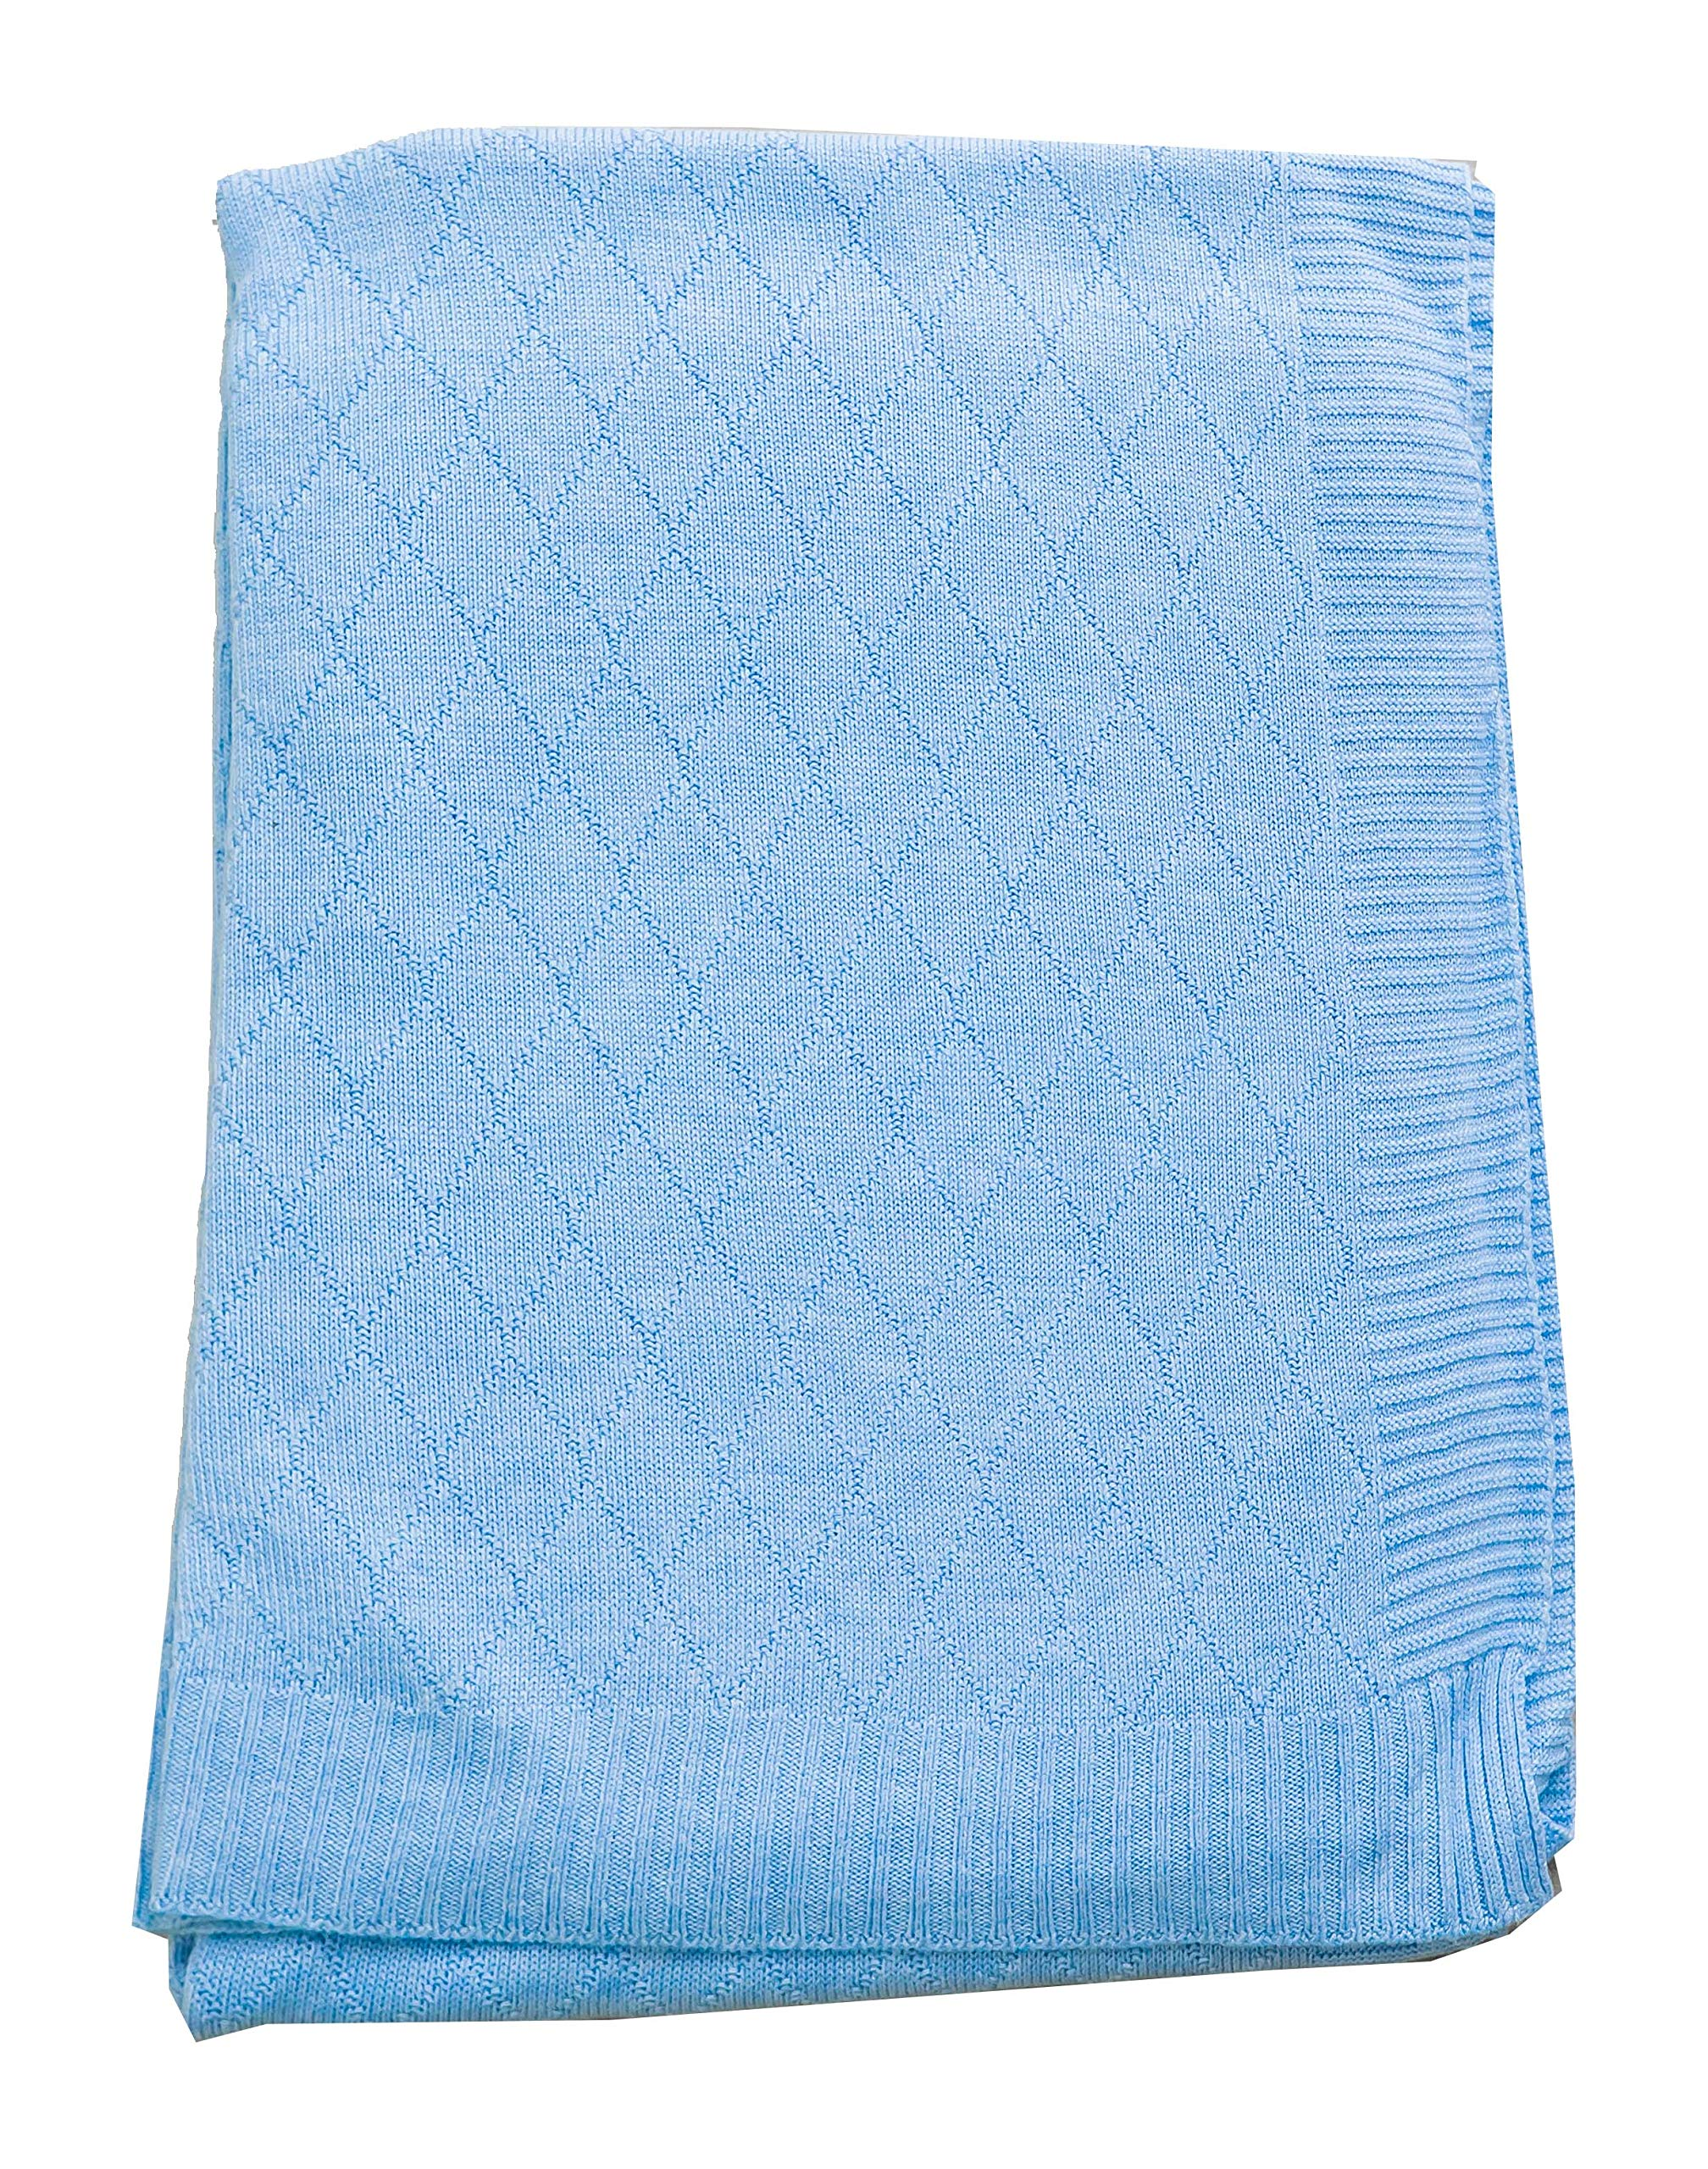 Baby Bright Baptism Christening Dedication Swaddle Blanket for New Born Infant Made from Ultra Soft 100% Viscose Shawls for New Baby Soft Warm Cozy Shawl Blanket for New Born Size 80 110 cms